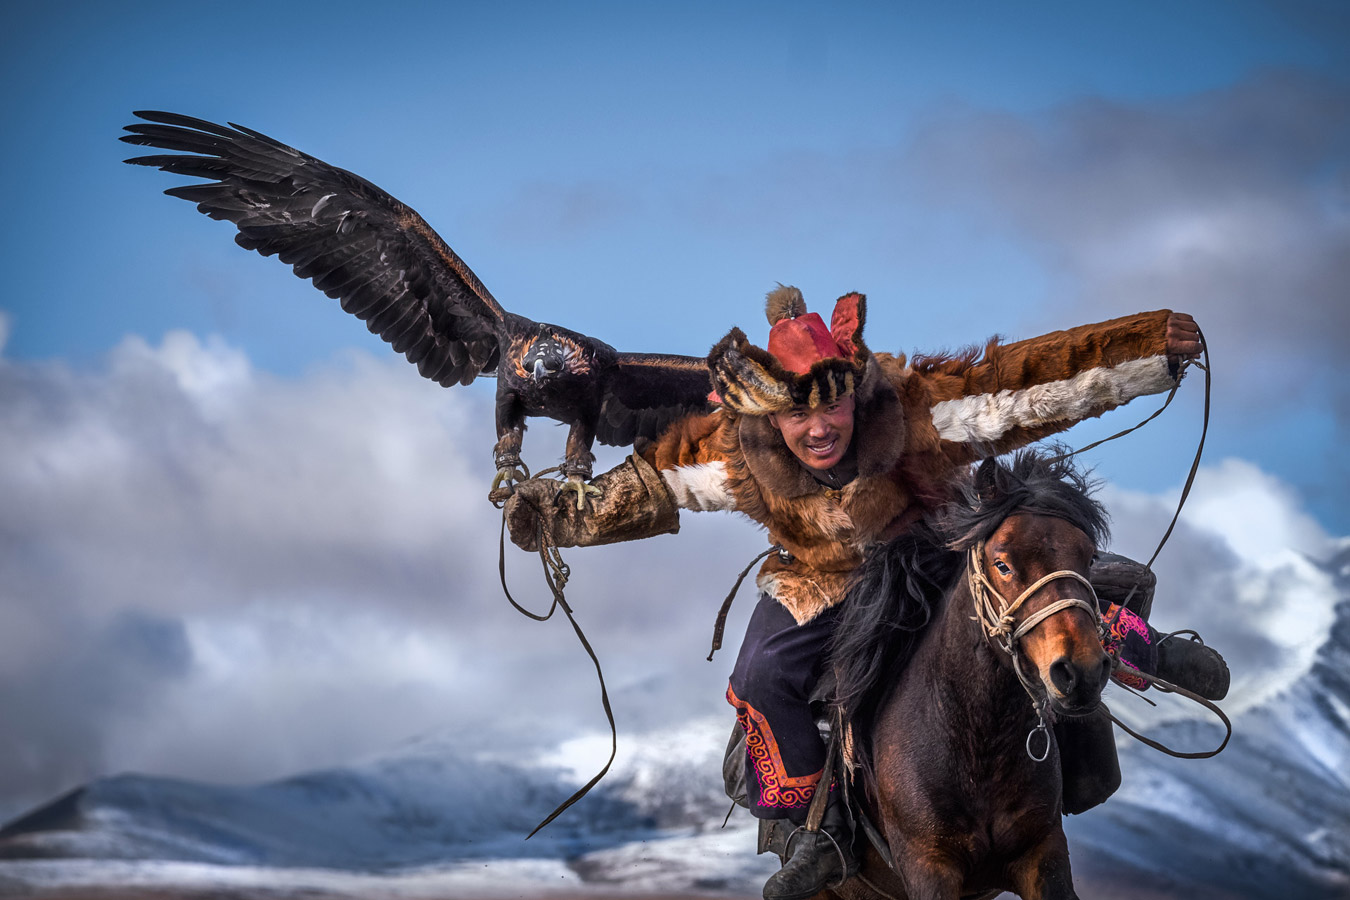 The Eagle's Hunter, © Simone Raso, Comerio, Varese, Italy, First Place Professional : Action/Adventure, The Great Outdoors: Landscape & Wildlife Photography Contest